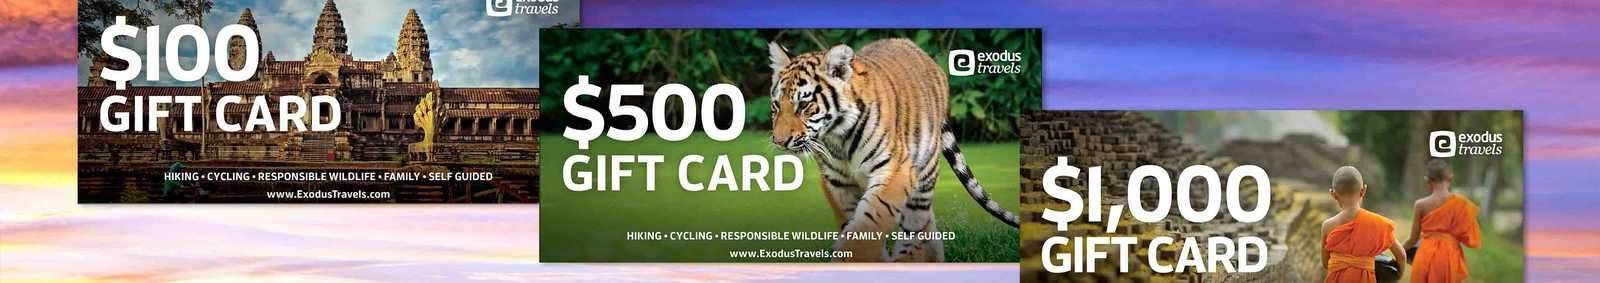 Exodus Travels gift cards